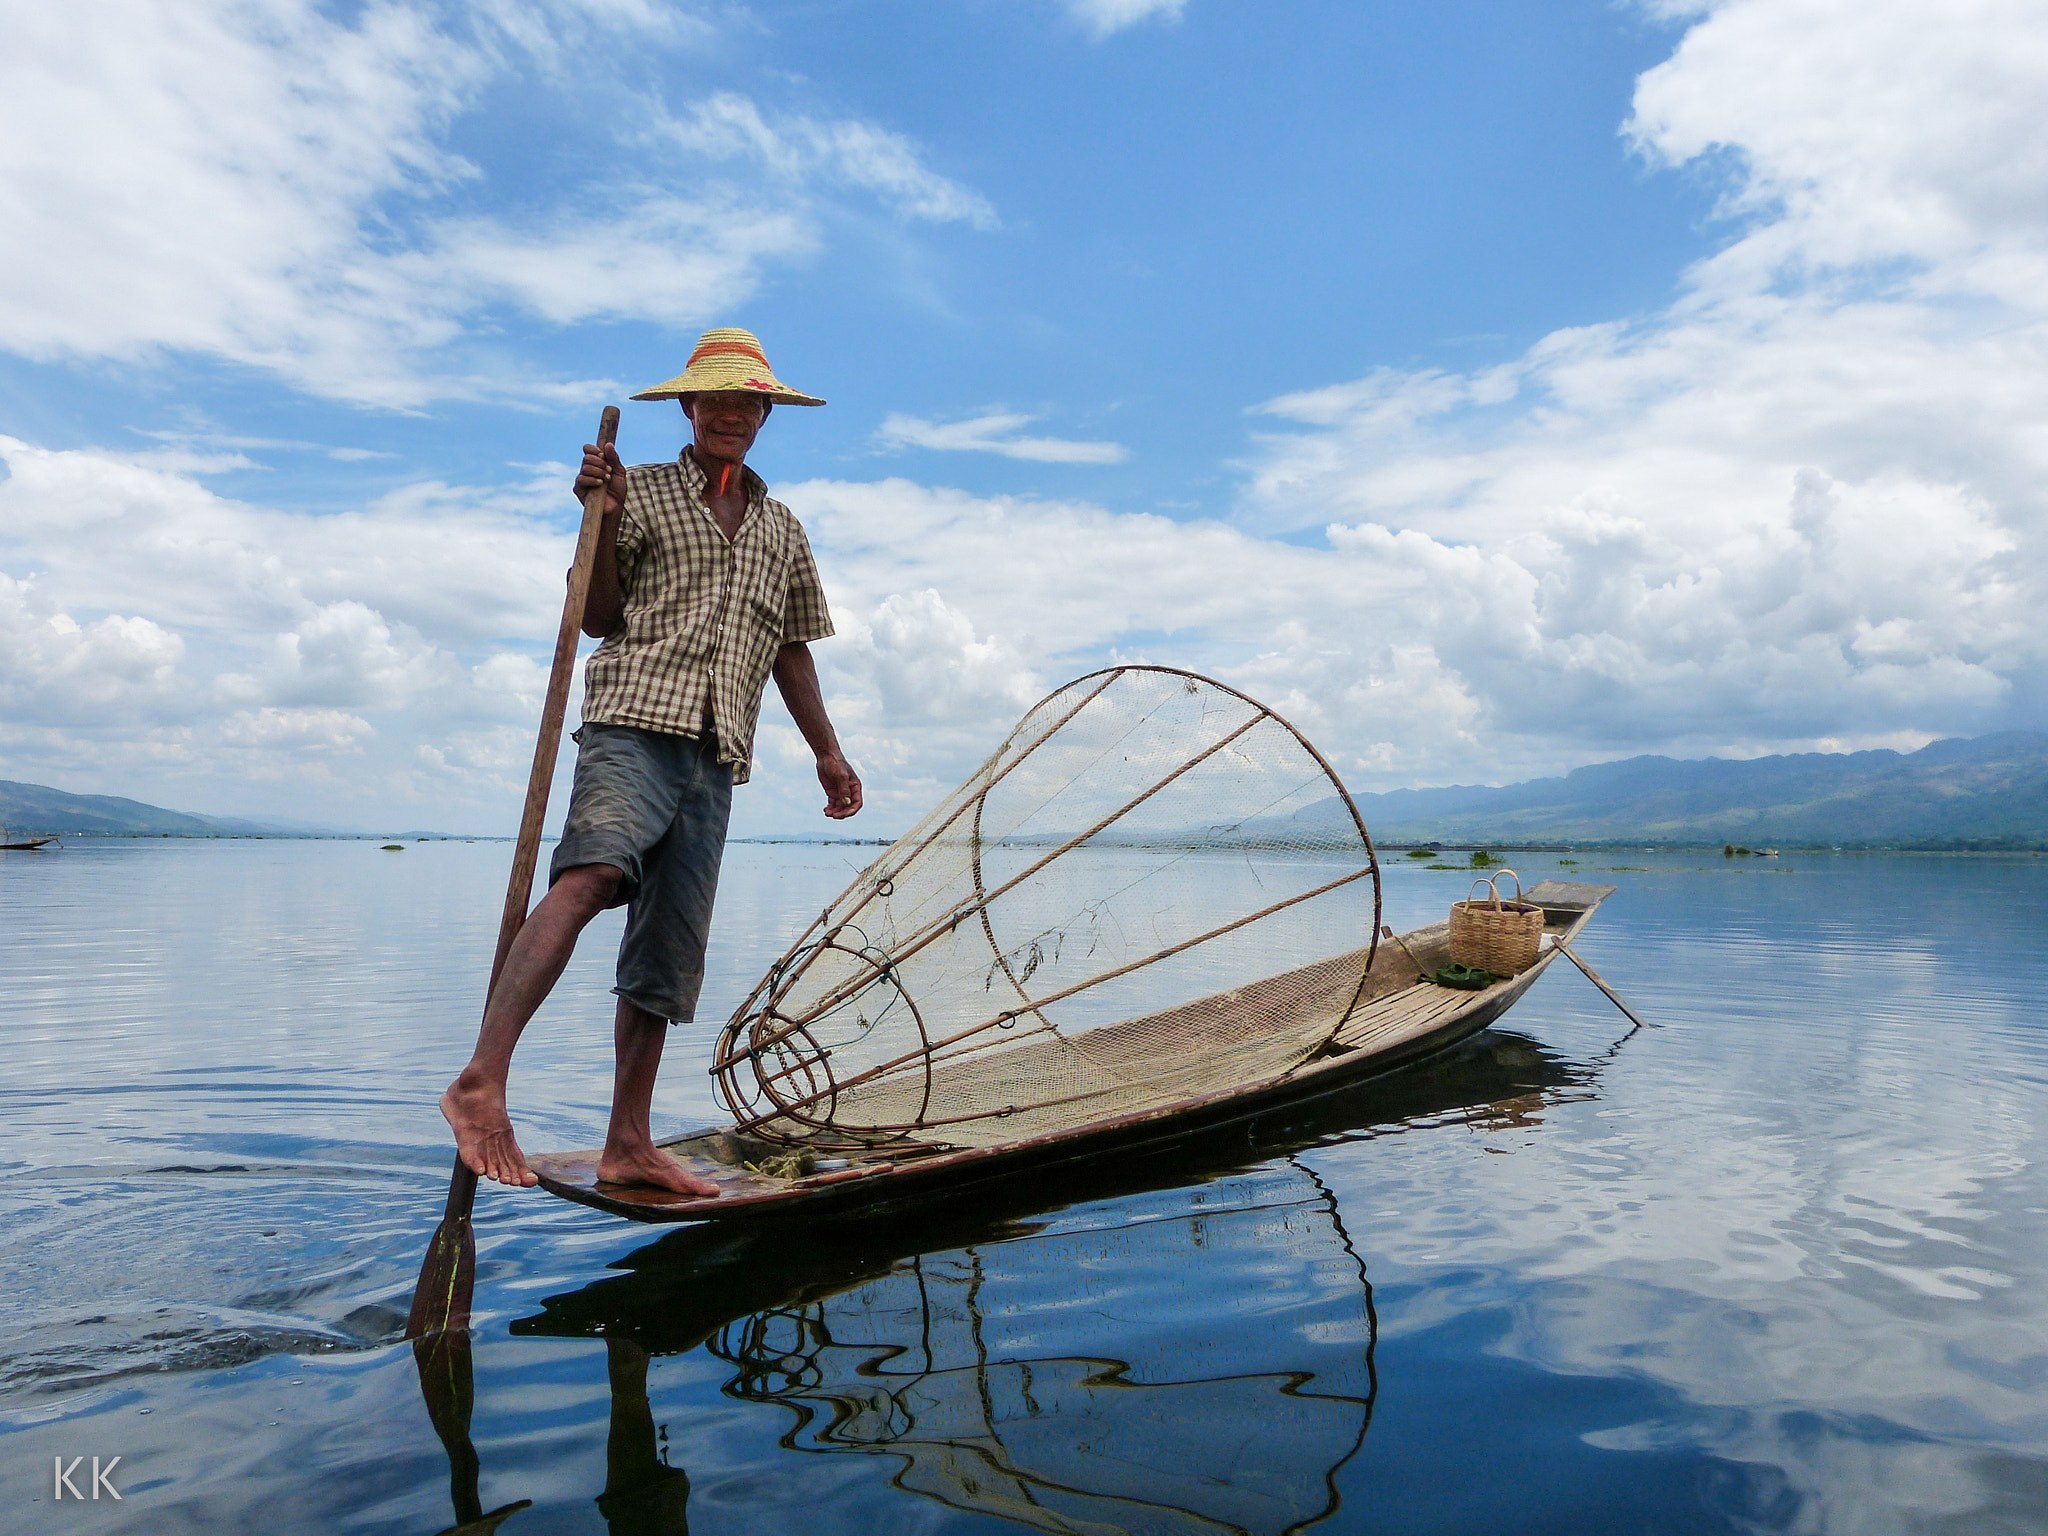 Photograph Fishing on Lake Inle, northern Burma by Kevin Kelly on 500px